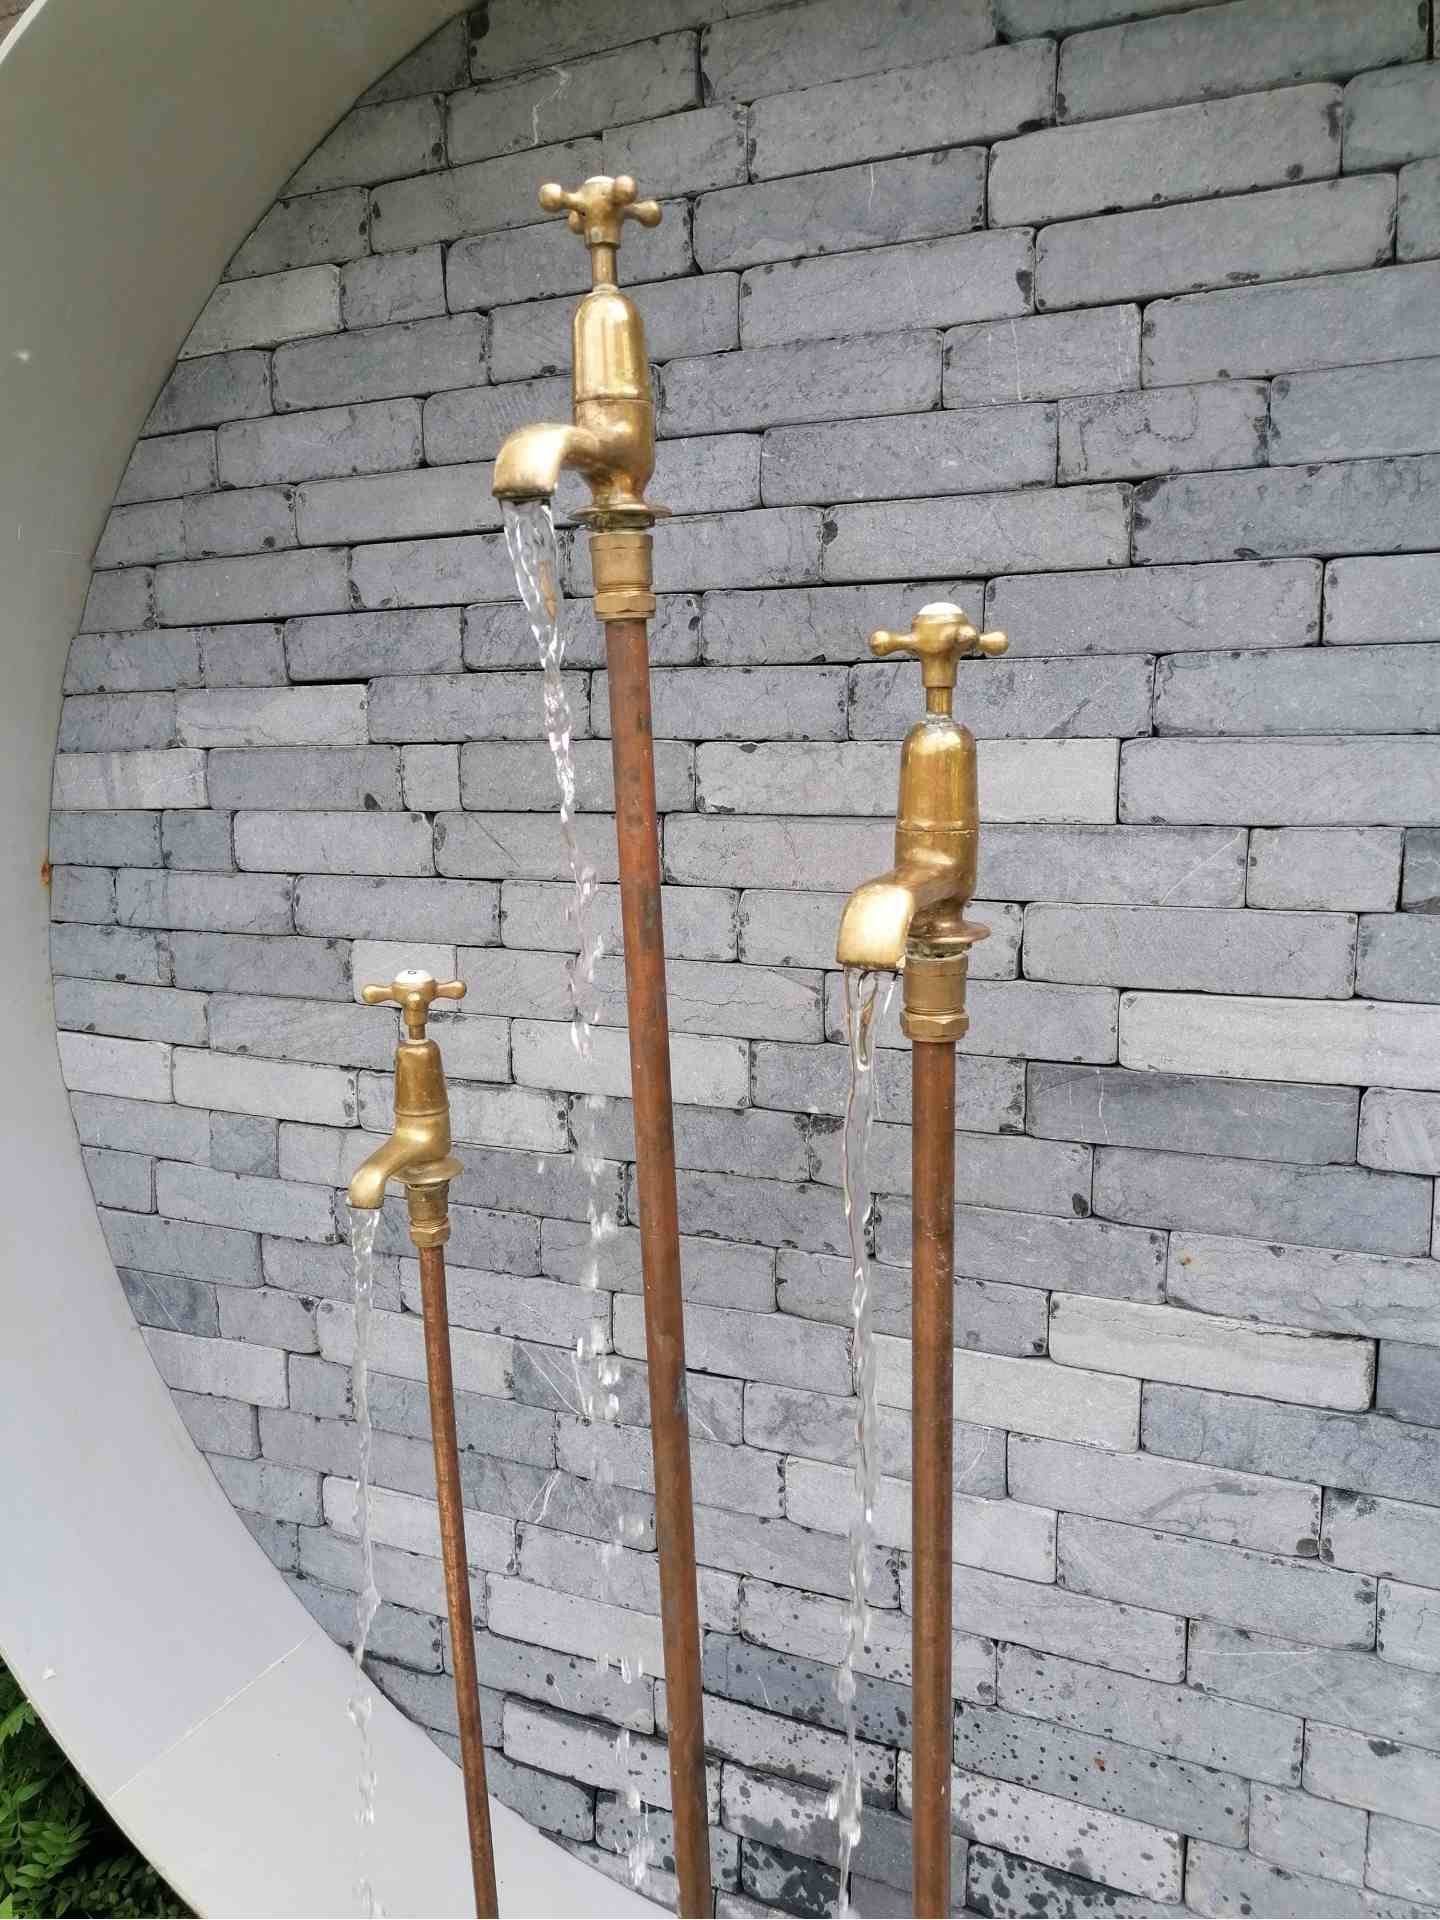 Re-used copper pipes and brass taps